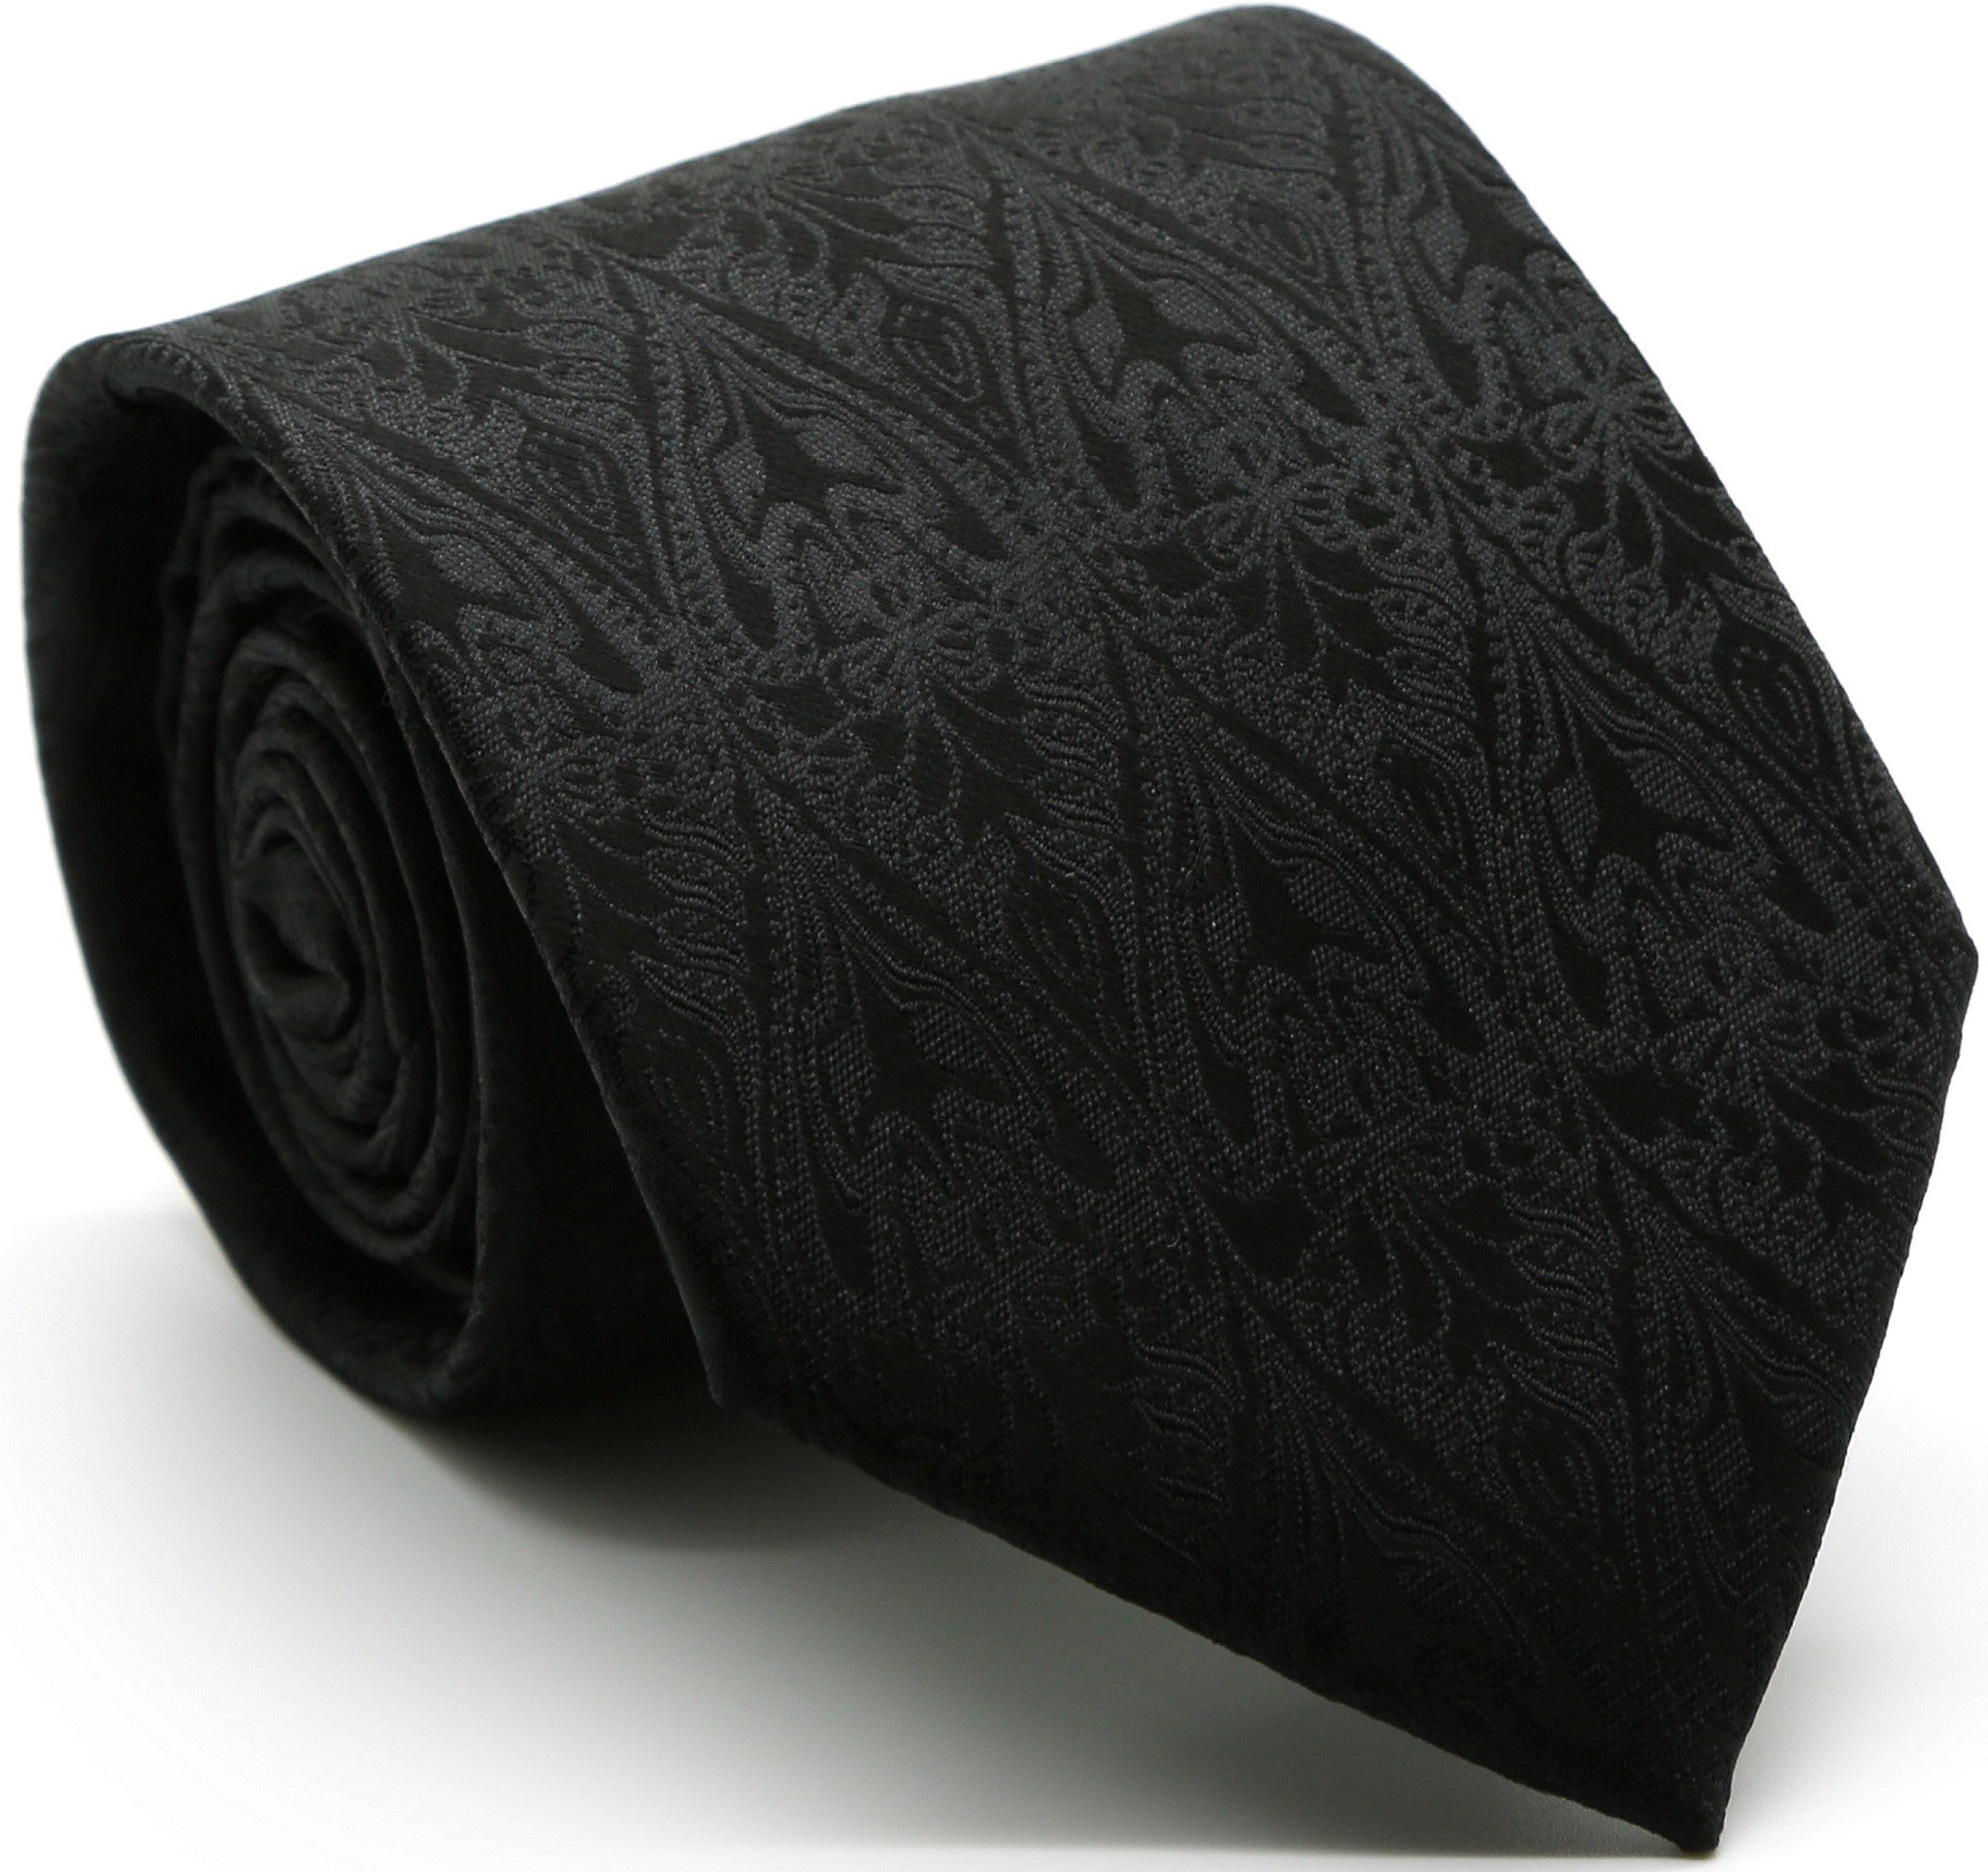 Premium Elegant Leaf Patterned Tied